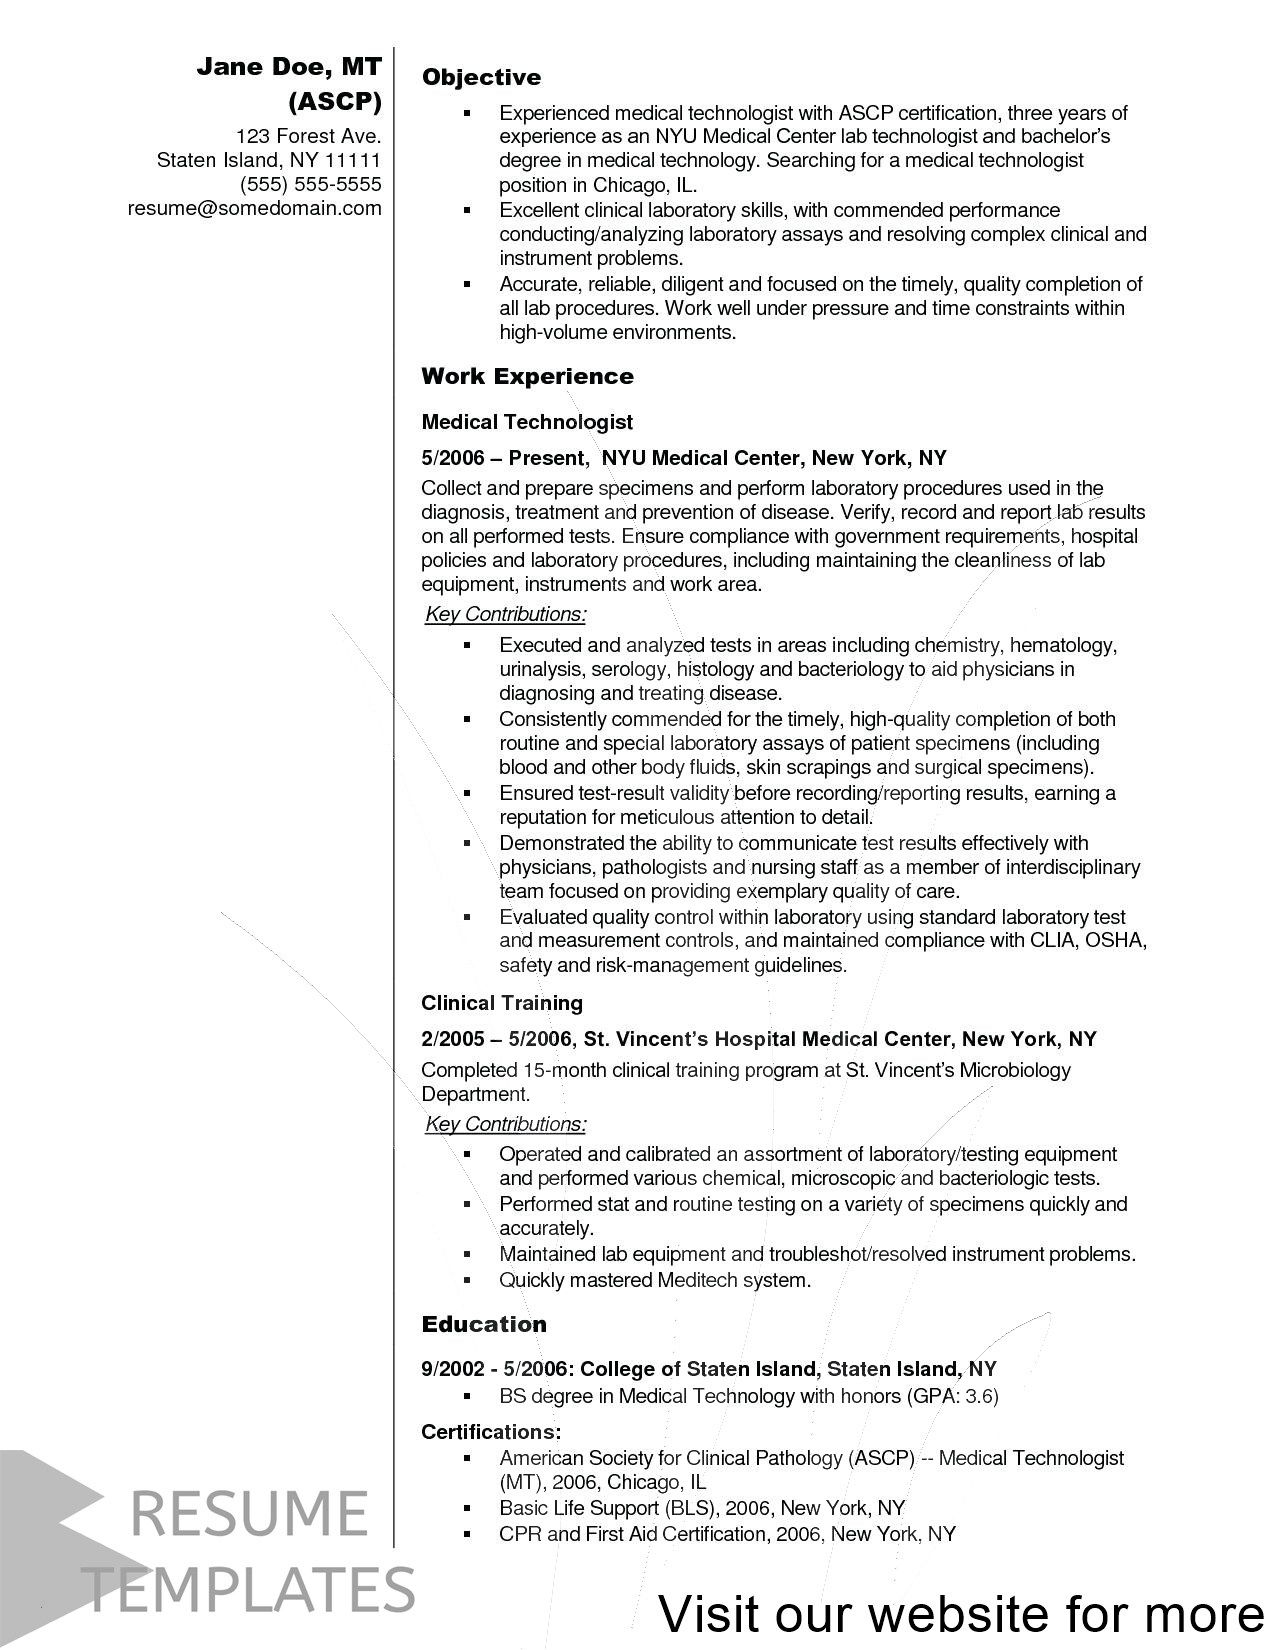 Office Resume Template Free Resume Template Free Job Resume Template Resume Template